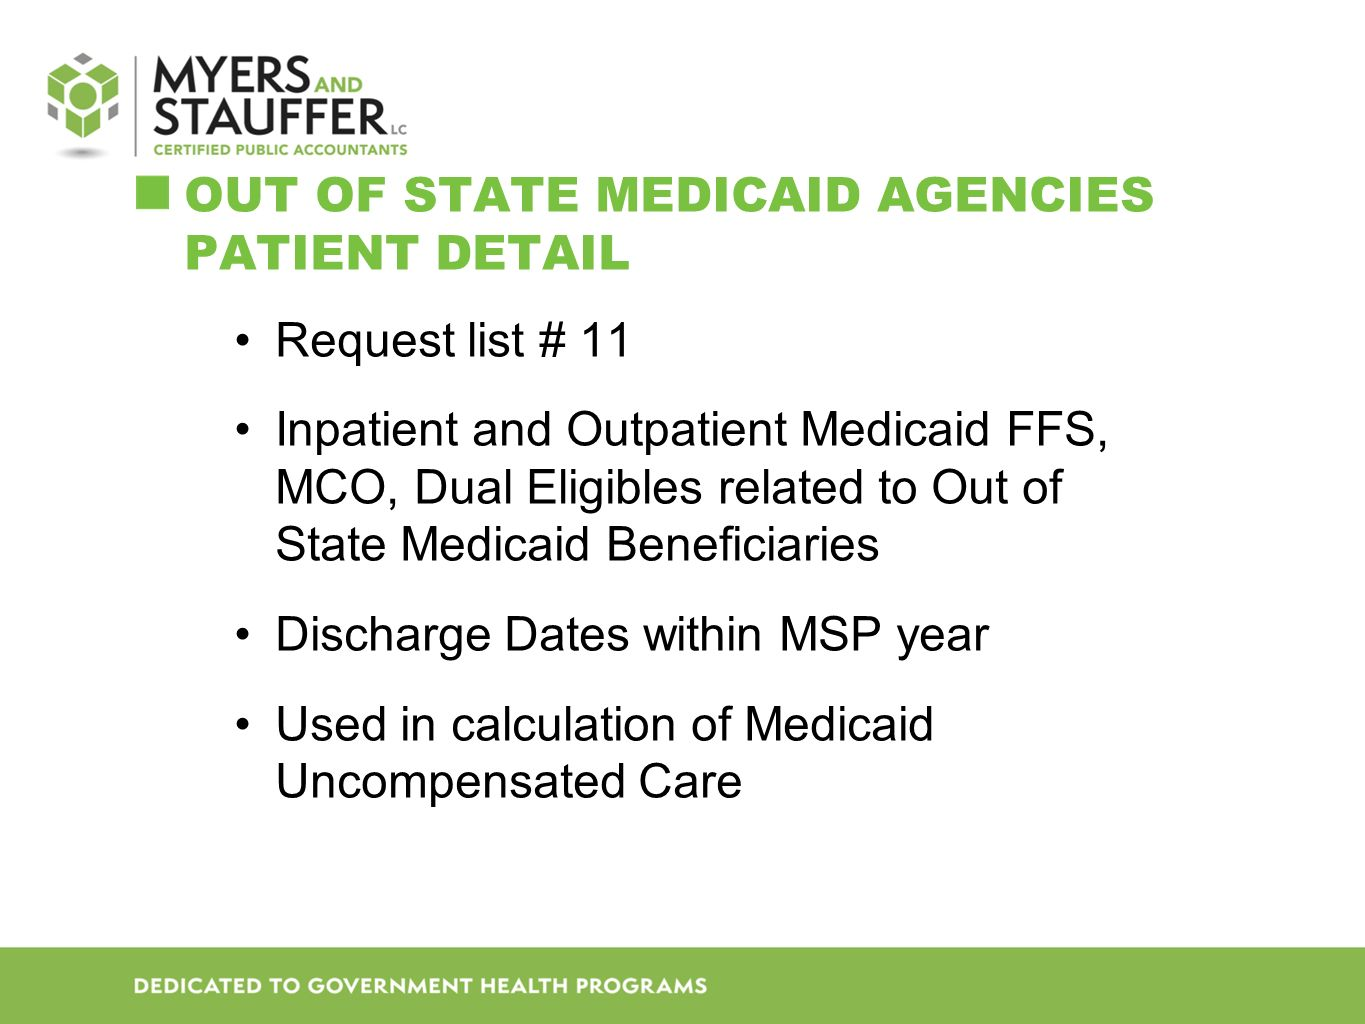 OUT OF STATE MEDICAID AGENCIES PATIENT DETAIL Request list # 11 Inpatient and Outpatient Medicaid FFS, MCO, Dual Eligibles related to Out of State Medicaid Beneficiaries Discharge Dates within MSP year Used in calculation of Medicaid Uncompensated Care